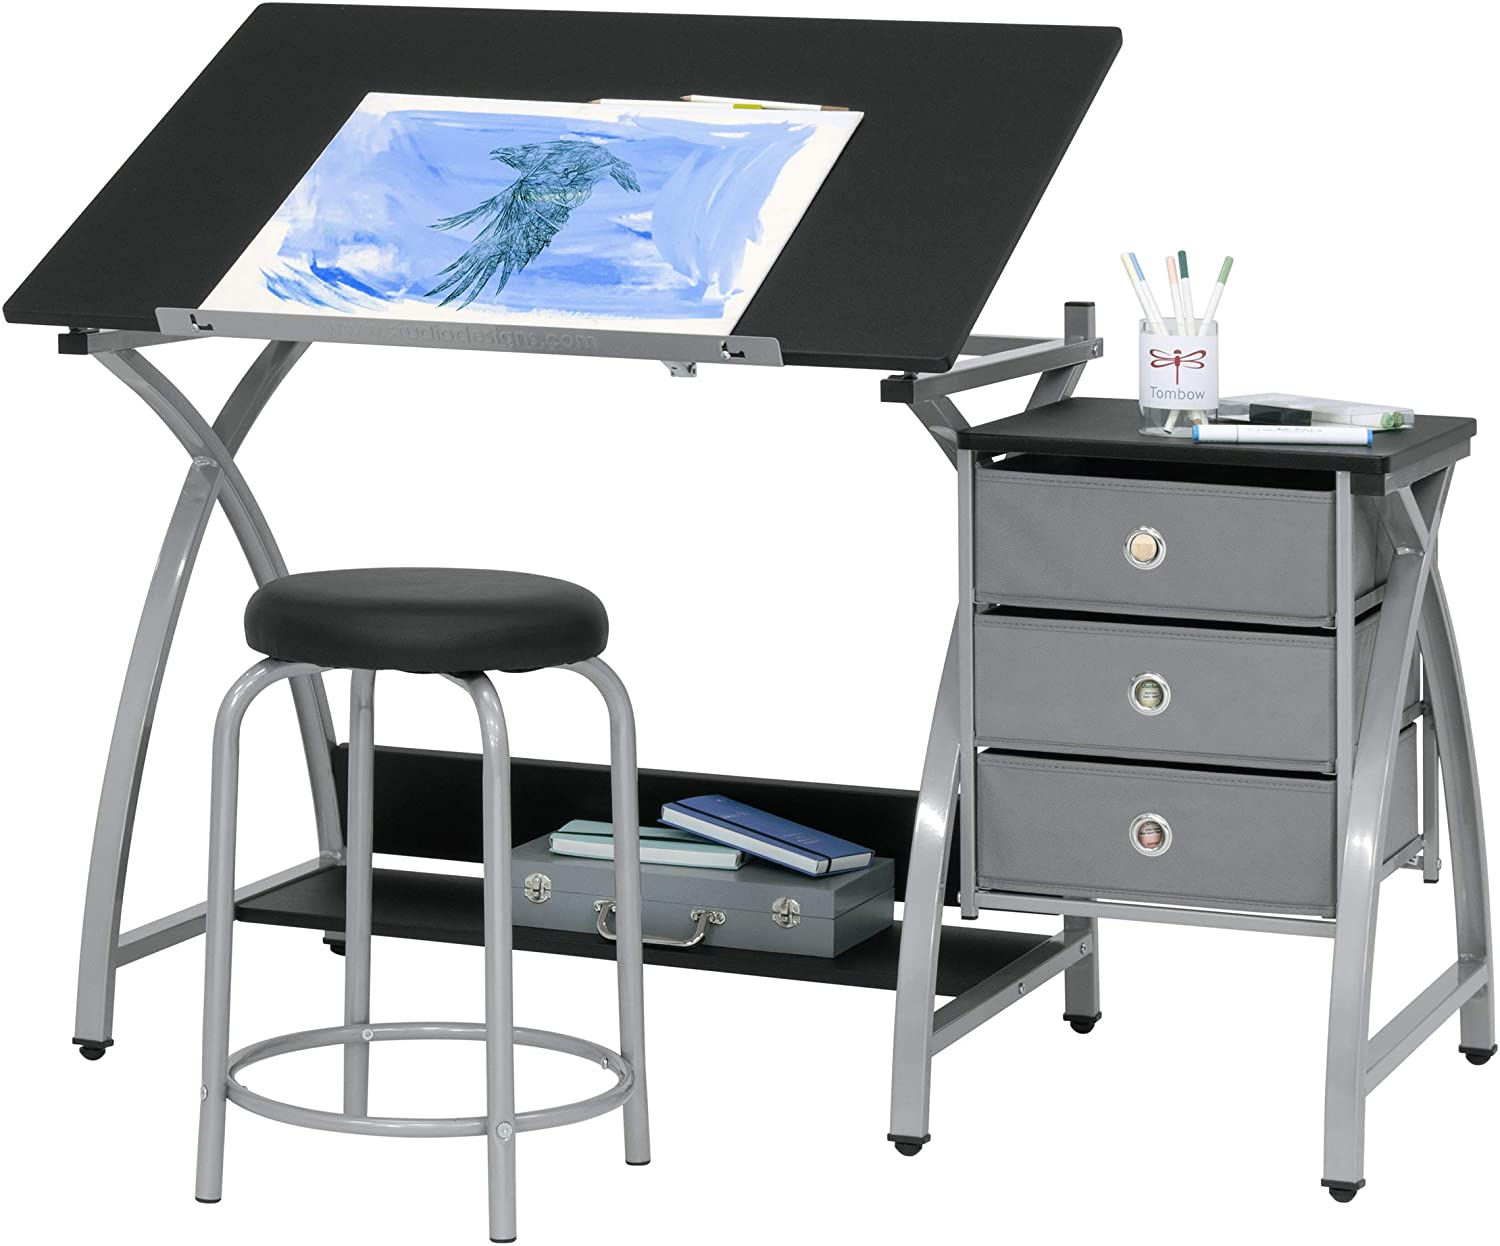 2 Piece Comet Art Drawing And Drafting Art Desk